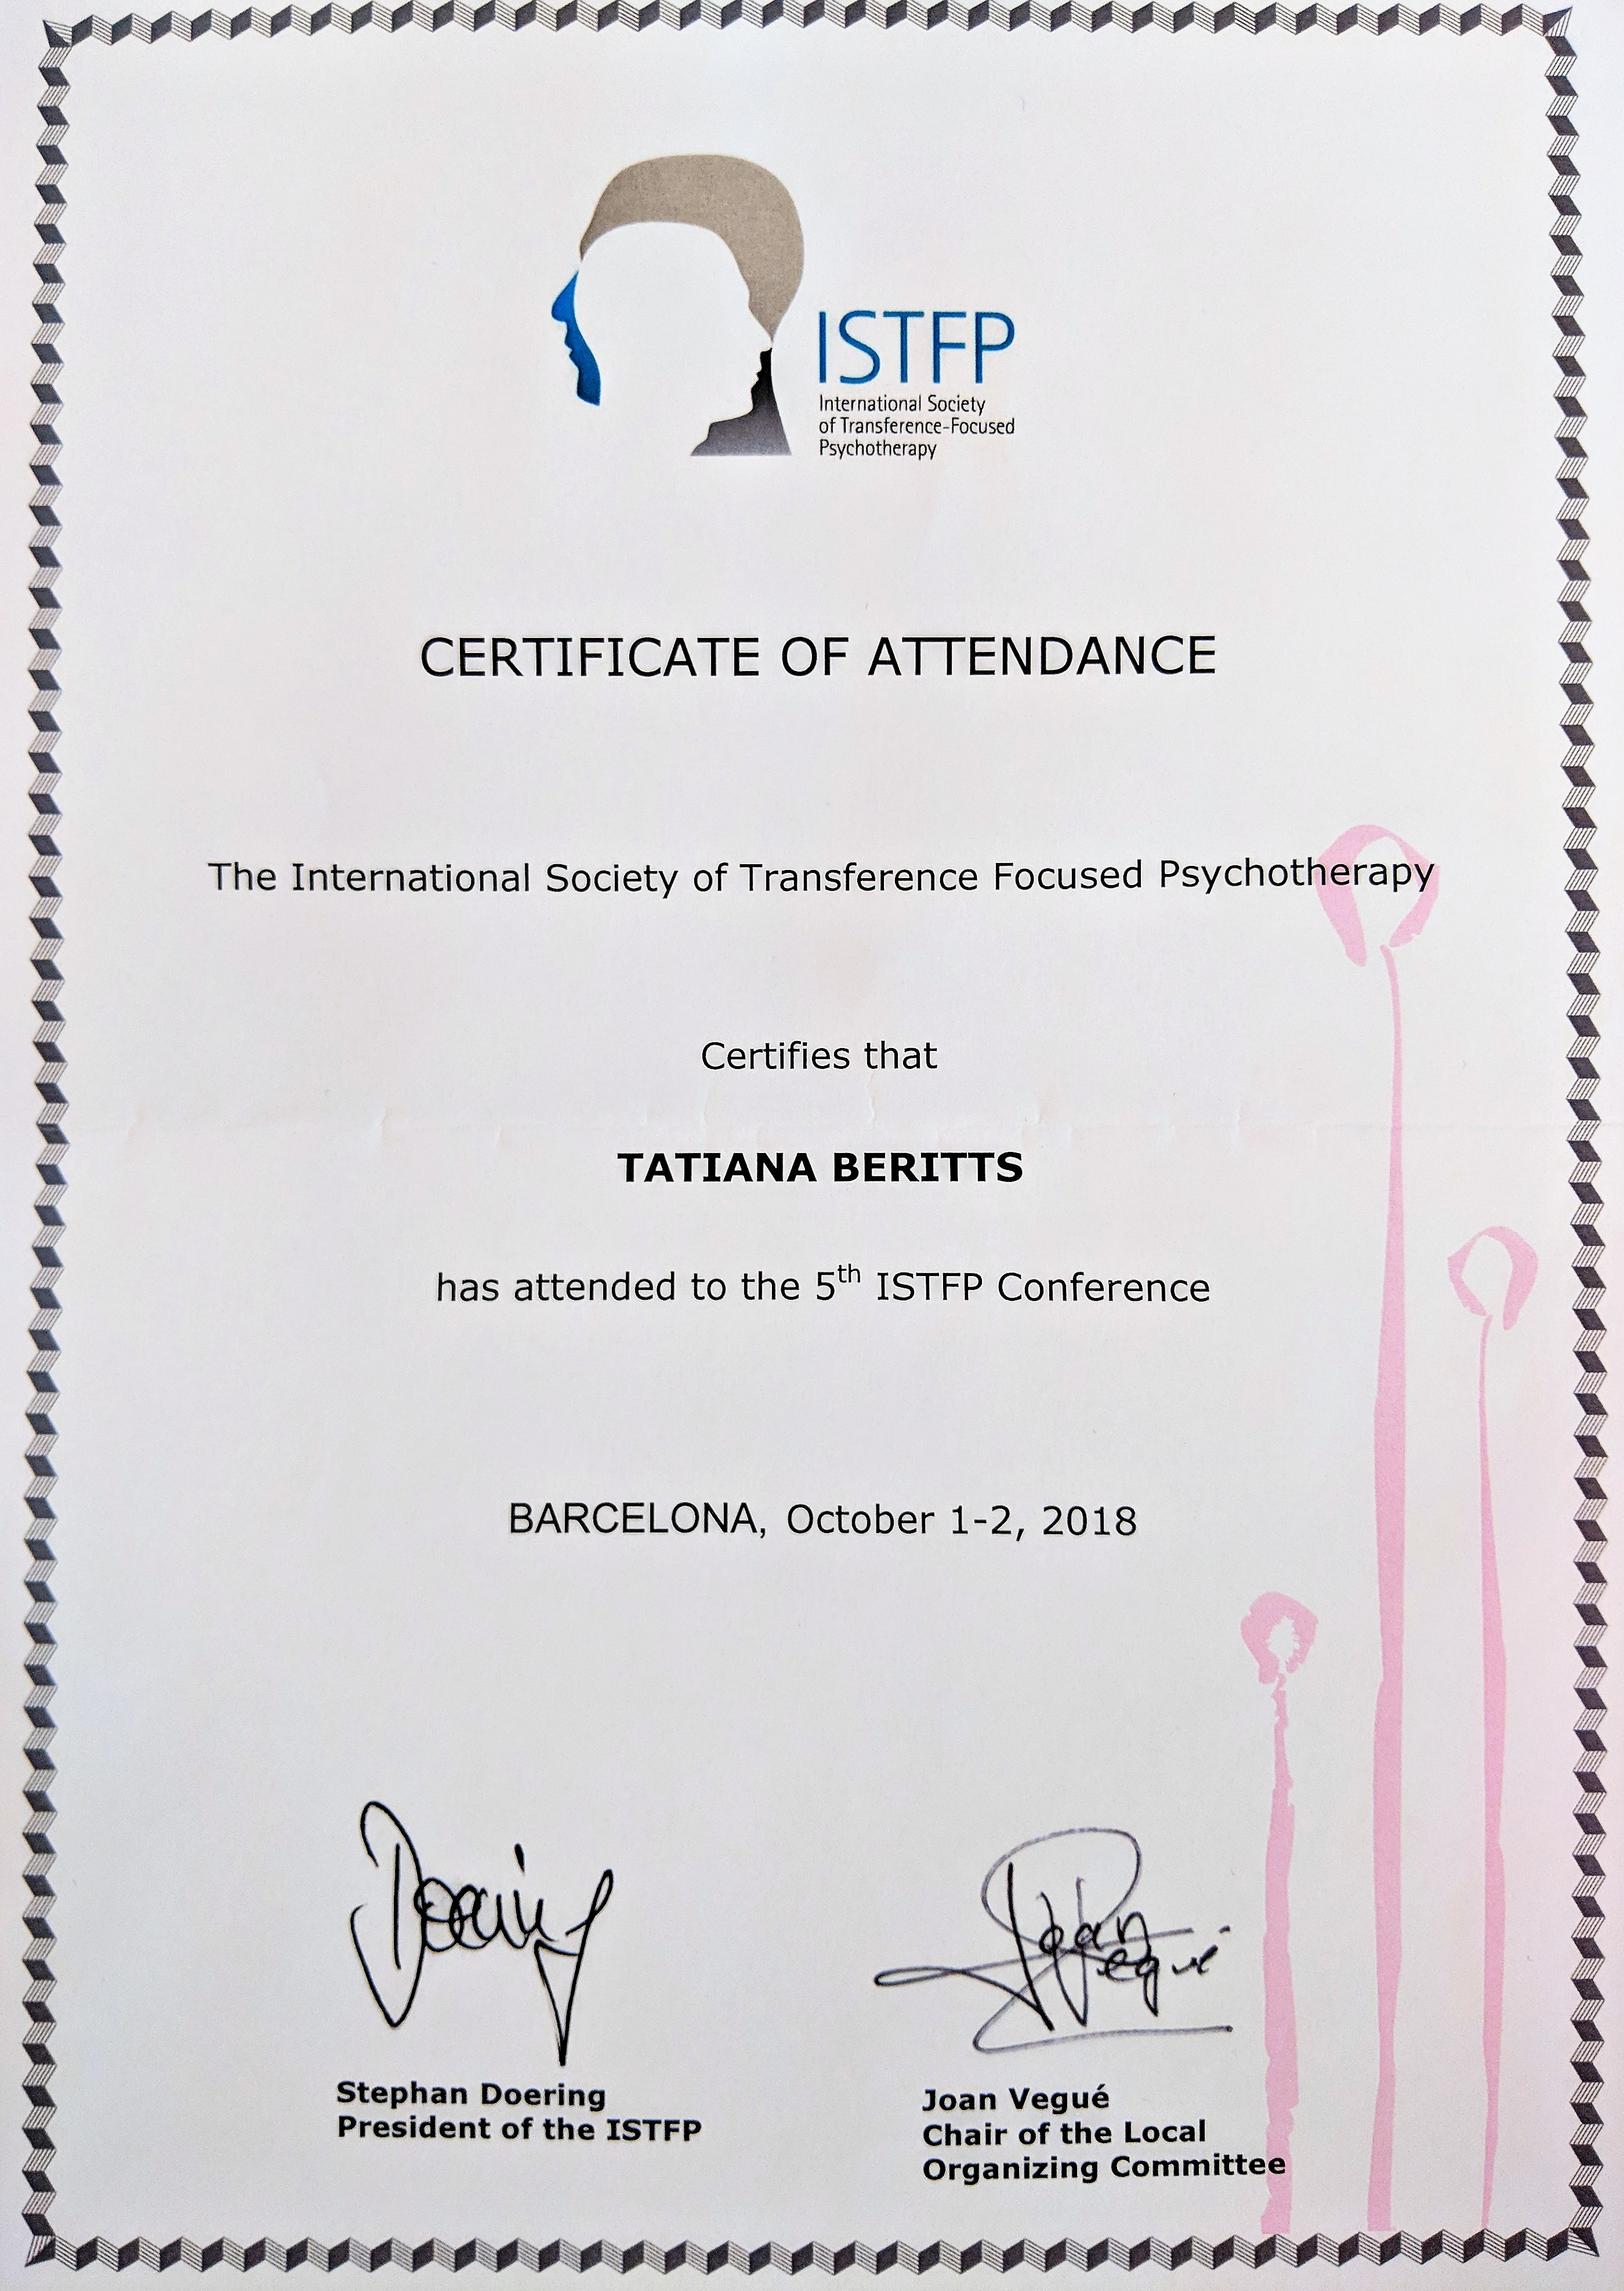 ISTFP conference